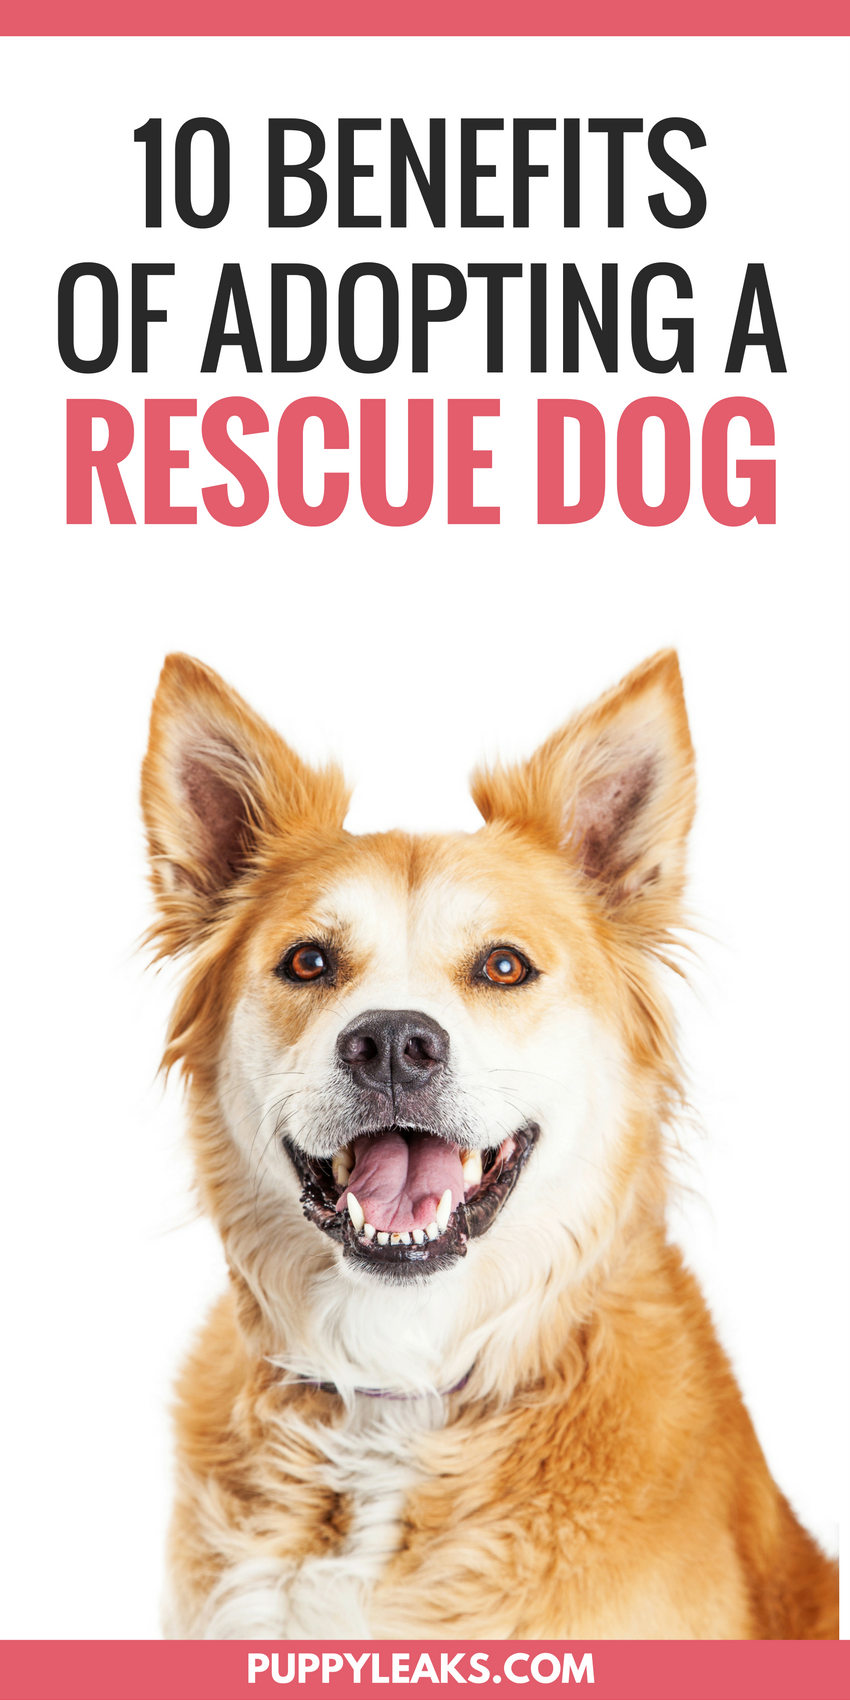 Benefits To Rescuing A Dog